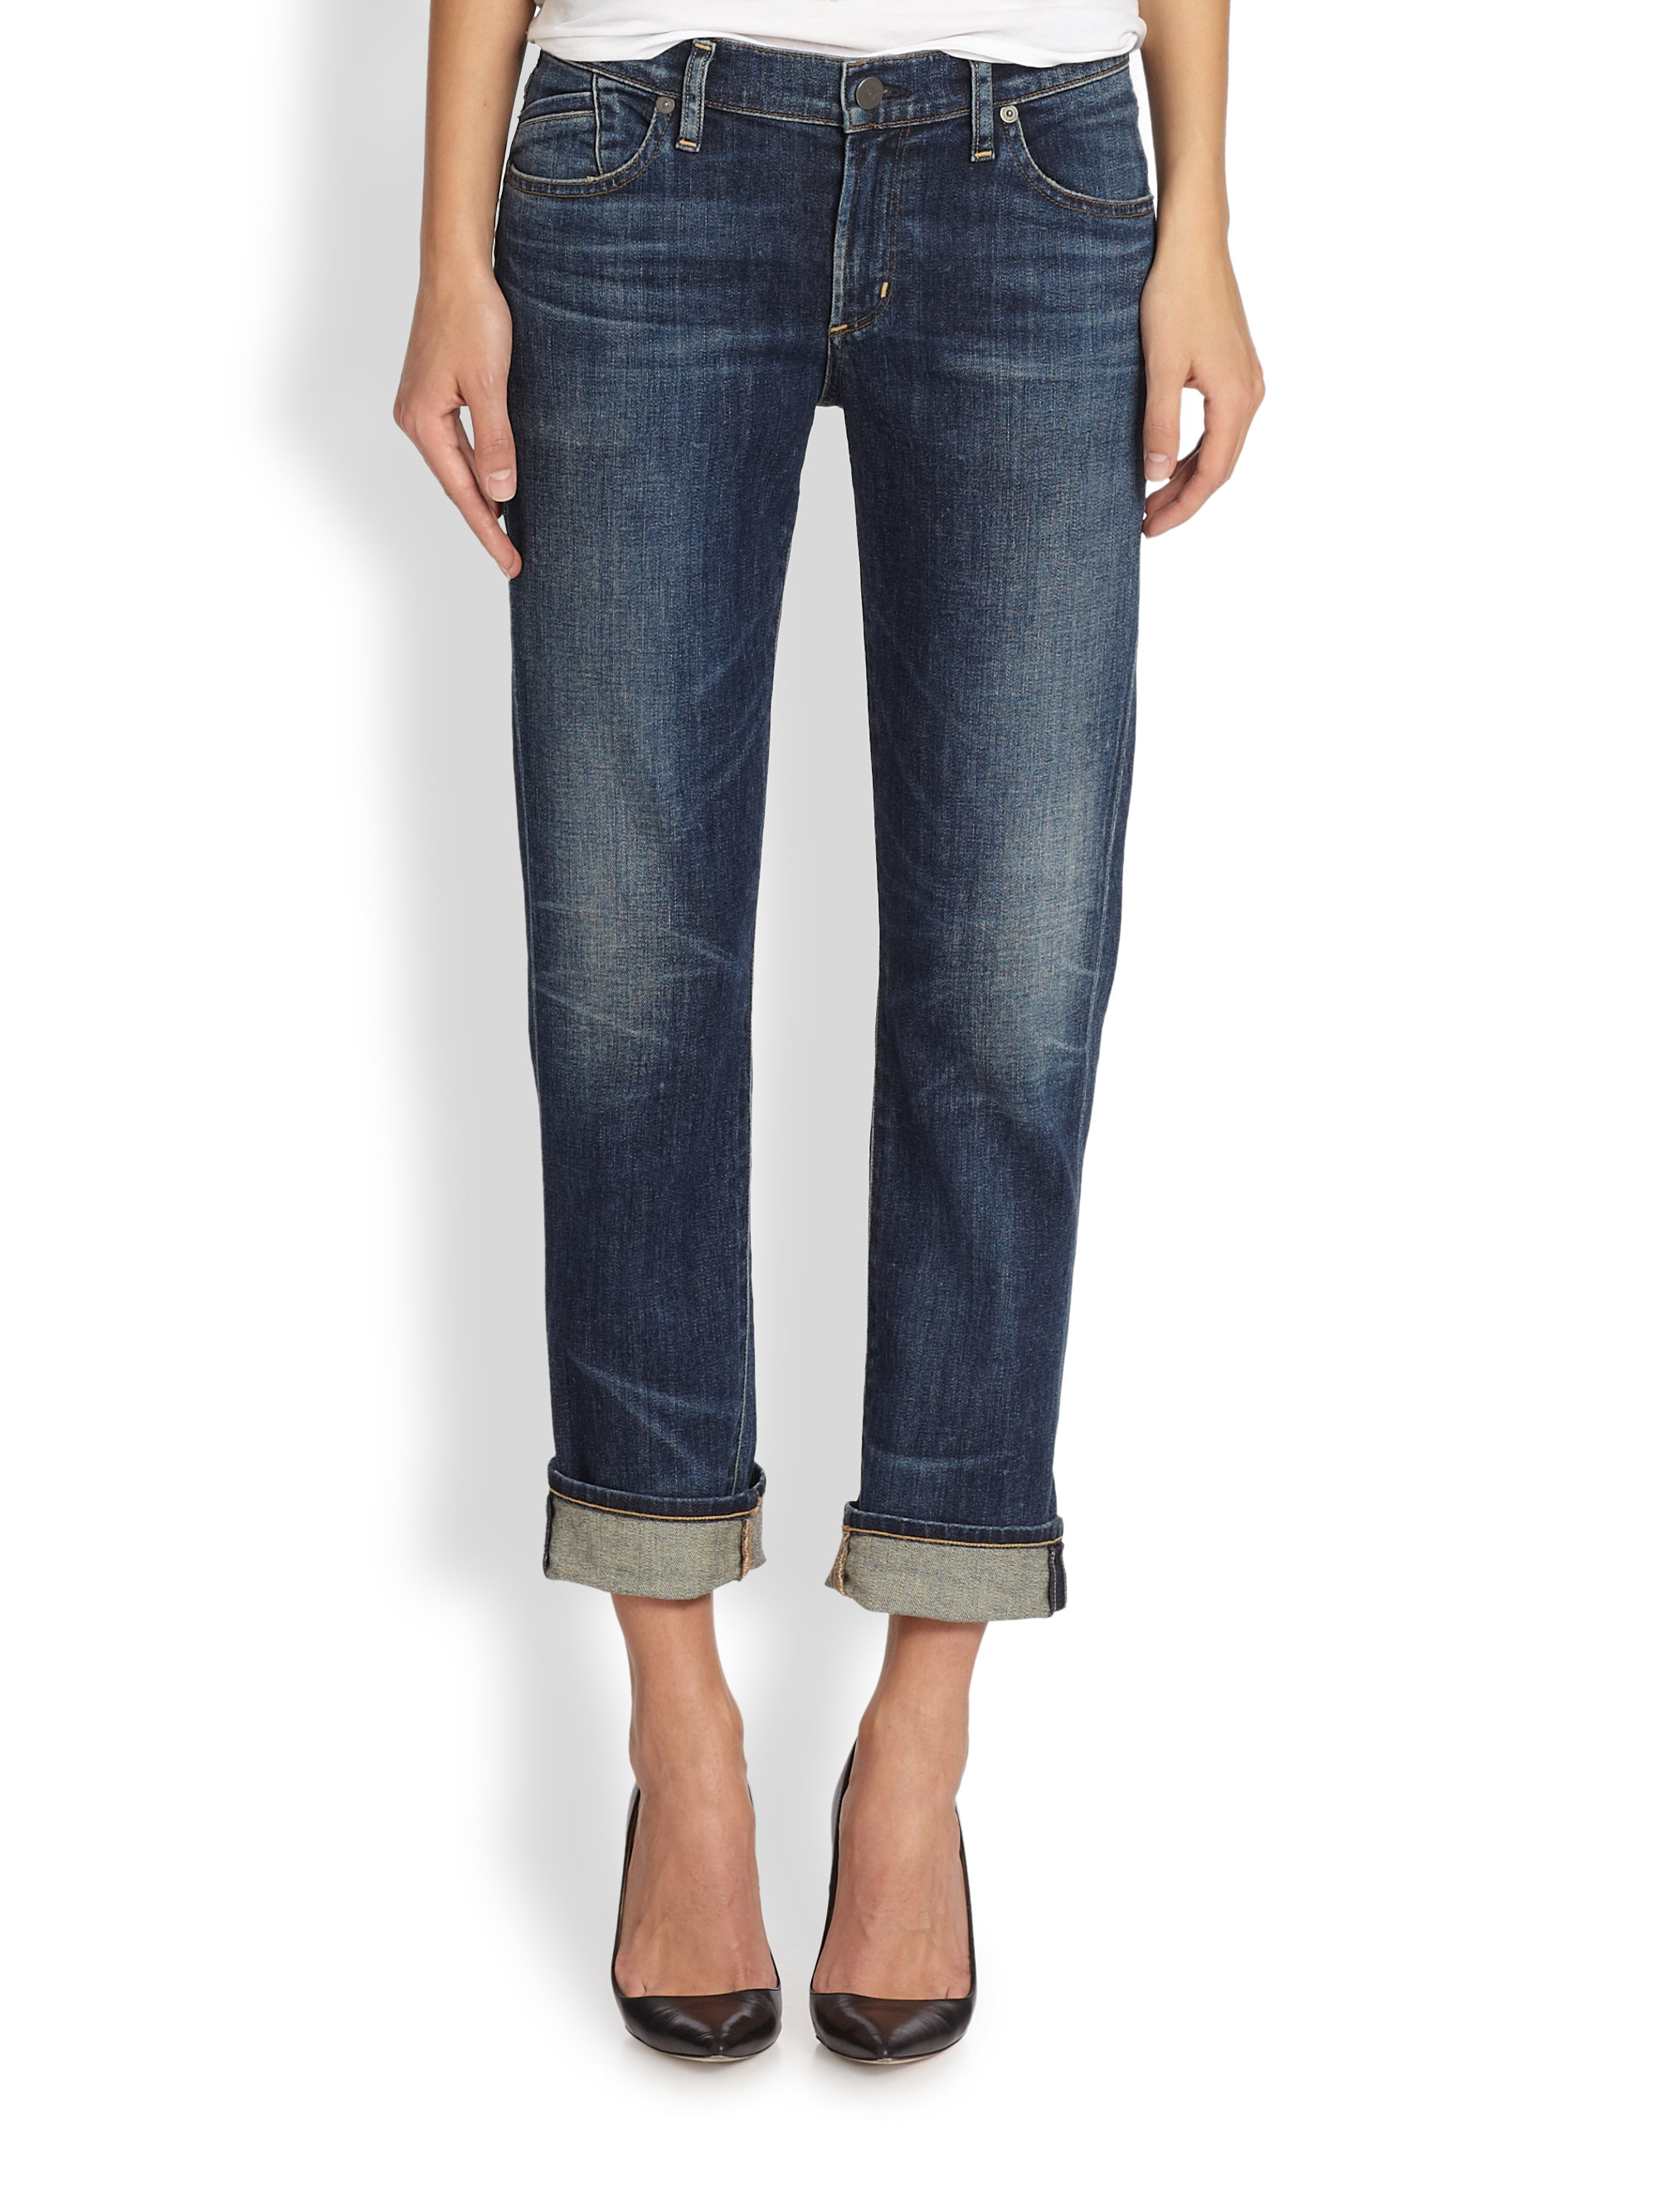 lyst citizens of humanity phoebe cropped boyfriend jeans in blue. Black Bedroom Furniture Sets. Home Design Ideas